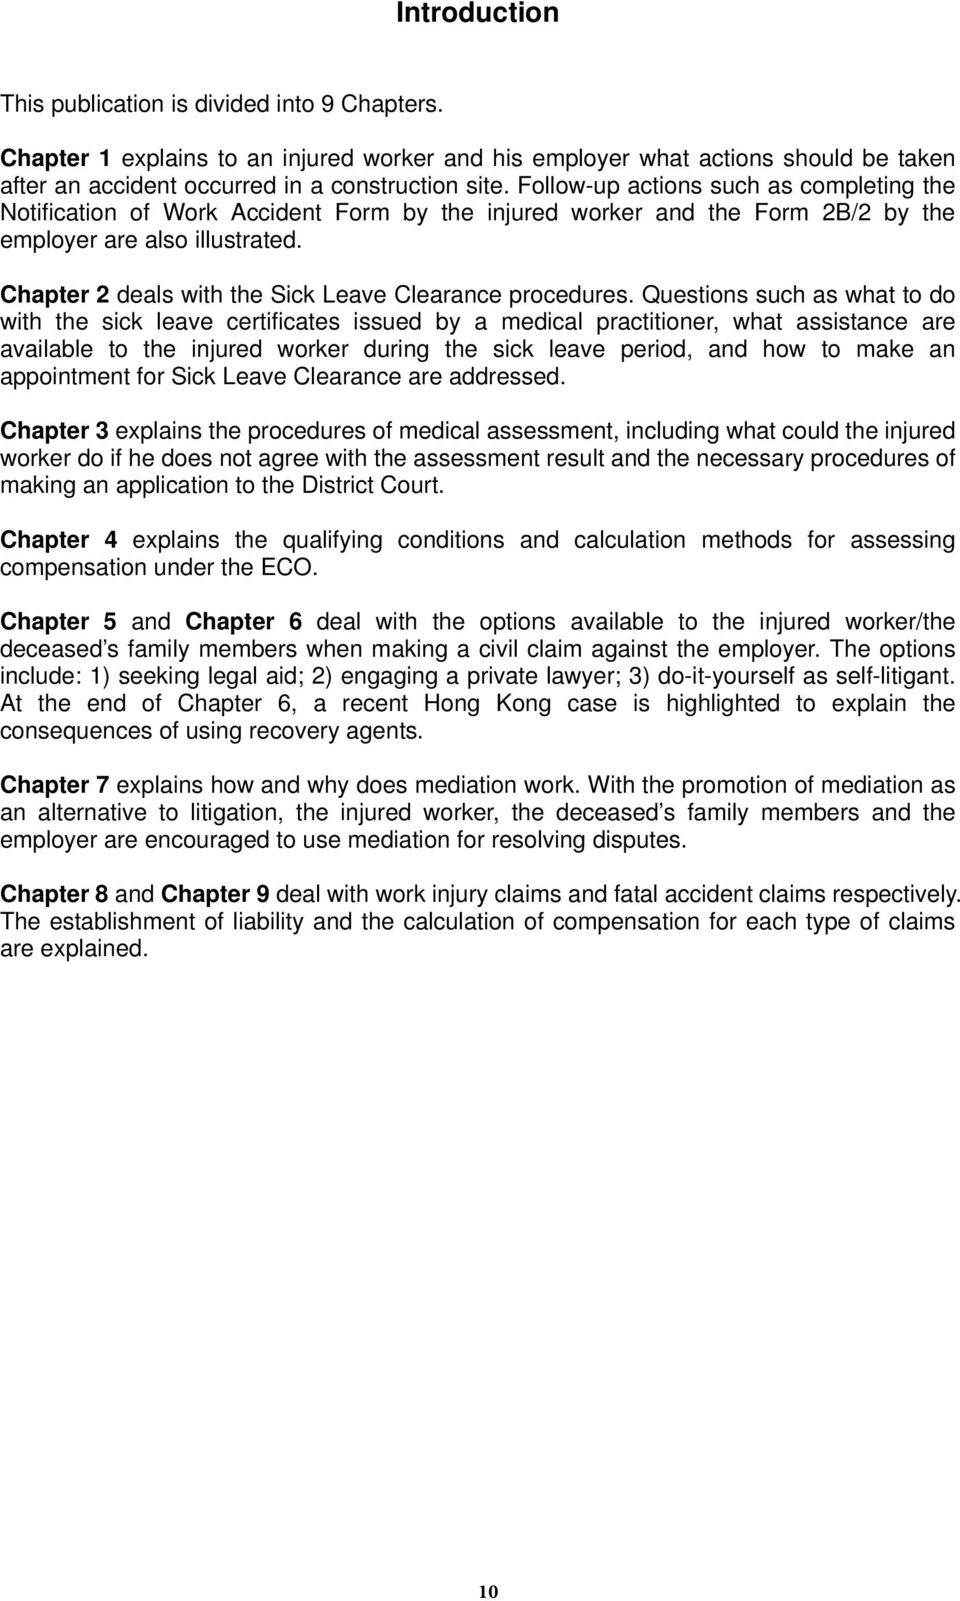 Chapter 2 deals with the Sick Leave Clearance procedures.